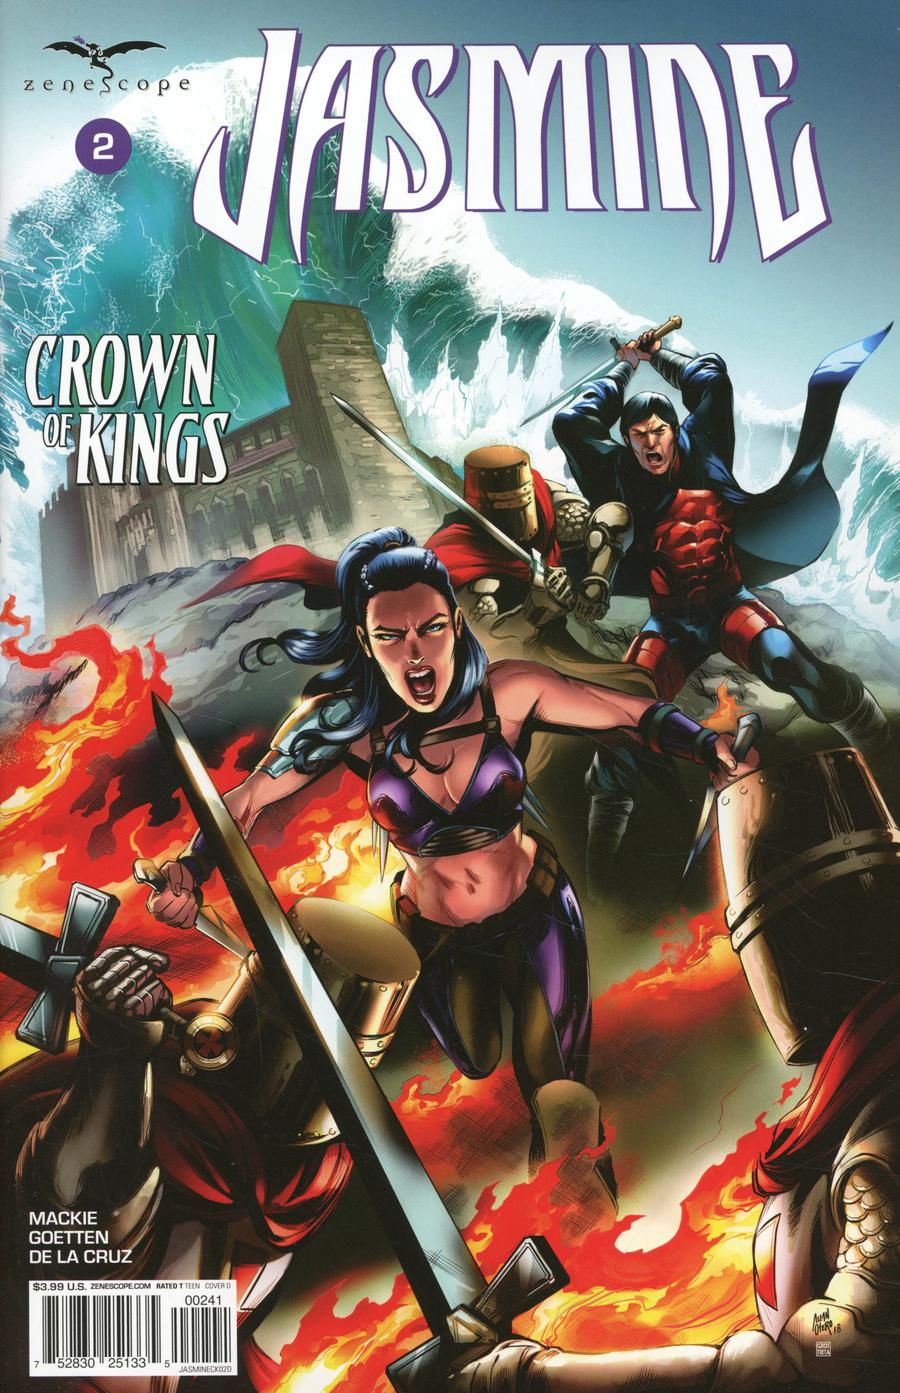 Grimm Fairy Tales Presents Jasmine Crown Of Kings #2 Cover D Allan Otero